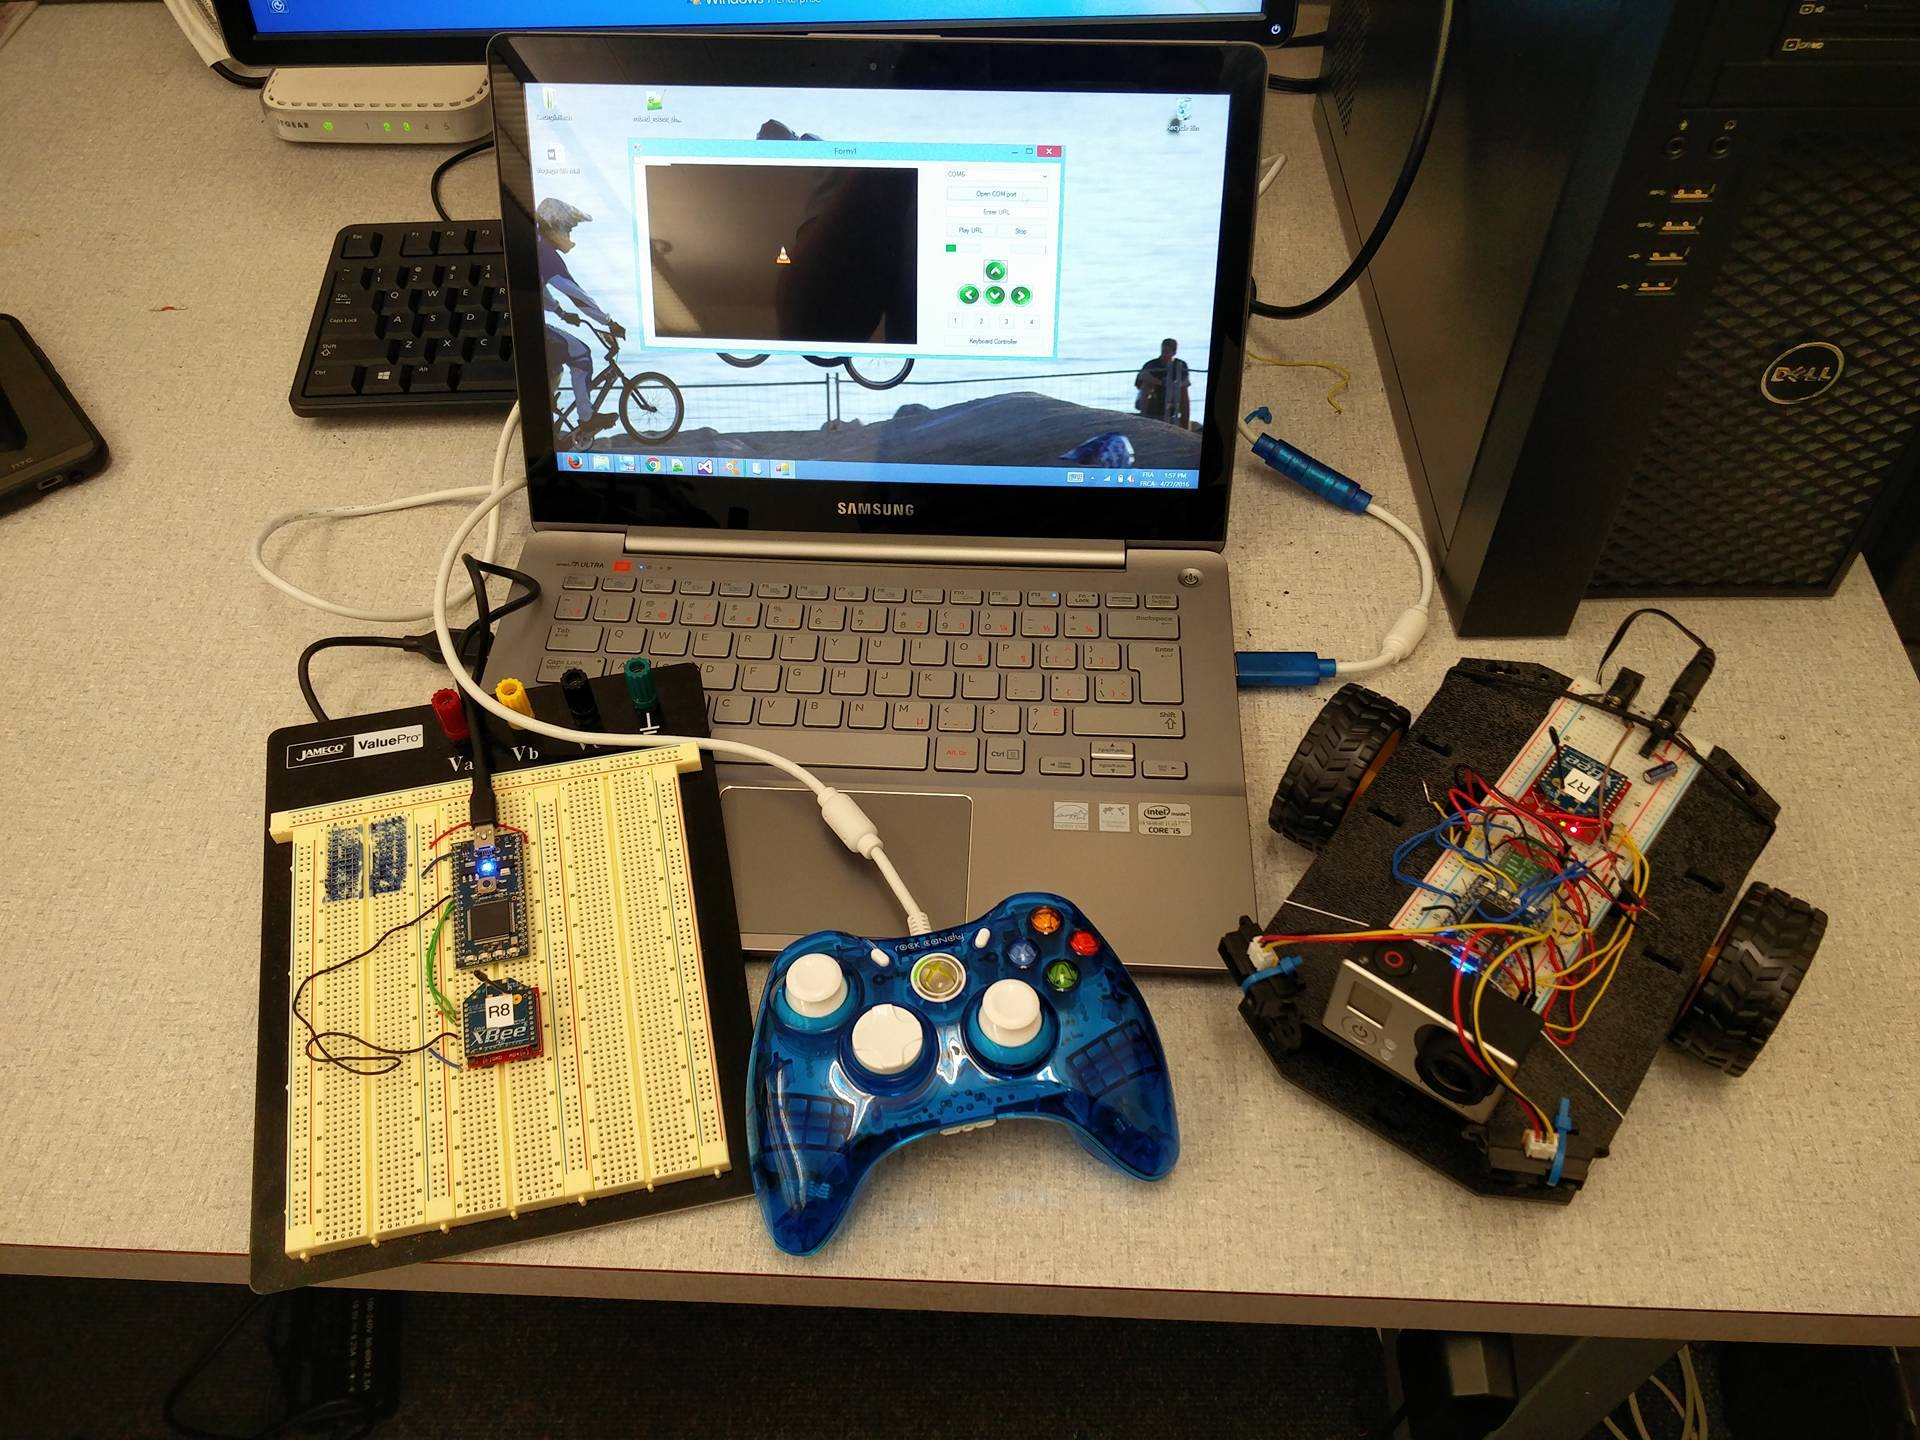 robot controlled using xbox controller and keyboard mbed